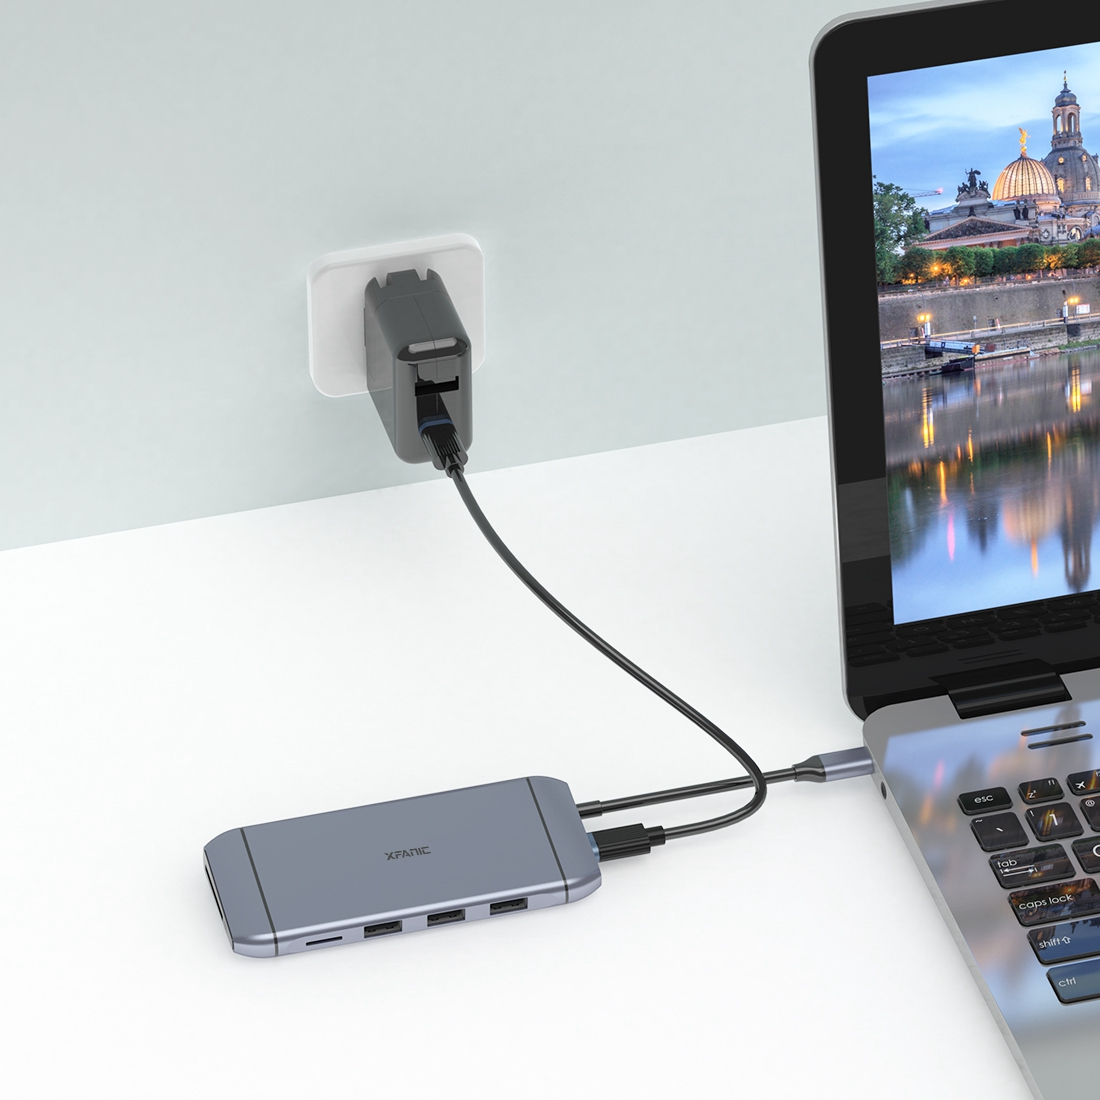 USB-C HUB 9-in-1 Docking Station